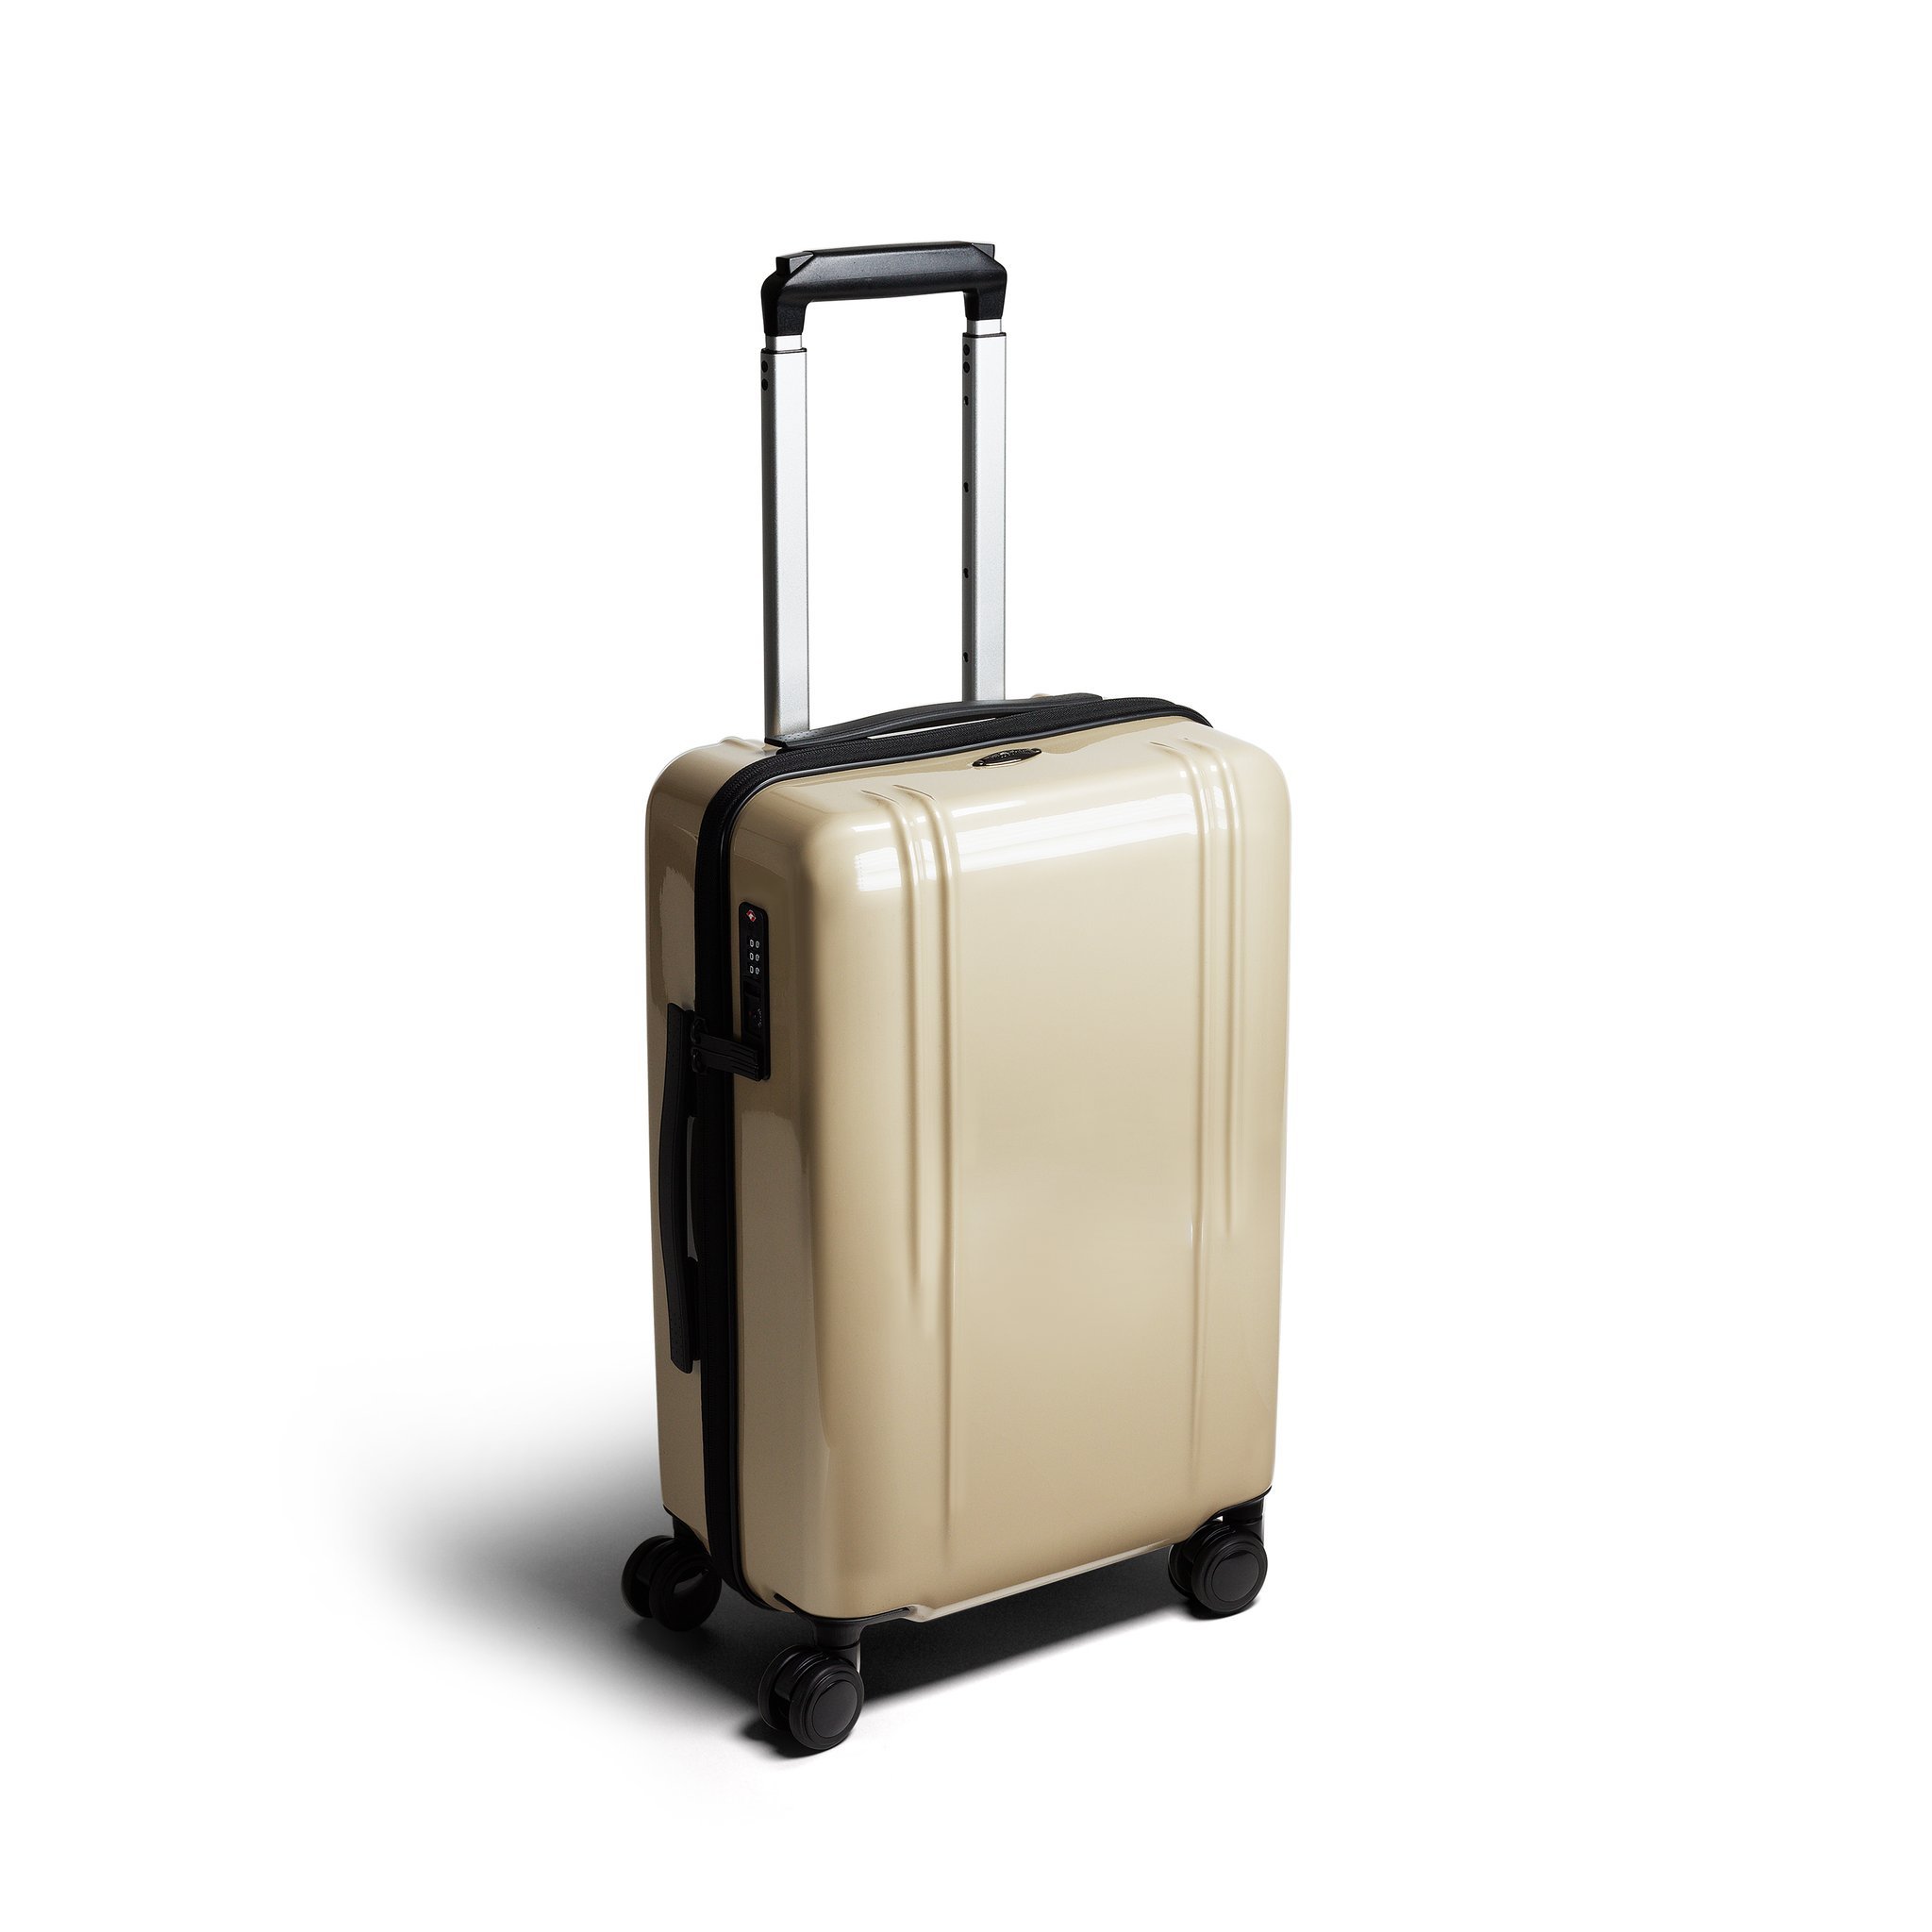 "ZRL - 20"" International Lightweight Carry-On Luggage by Zero Halliburton (Color: Polished Gold)"